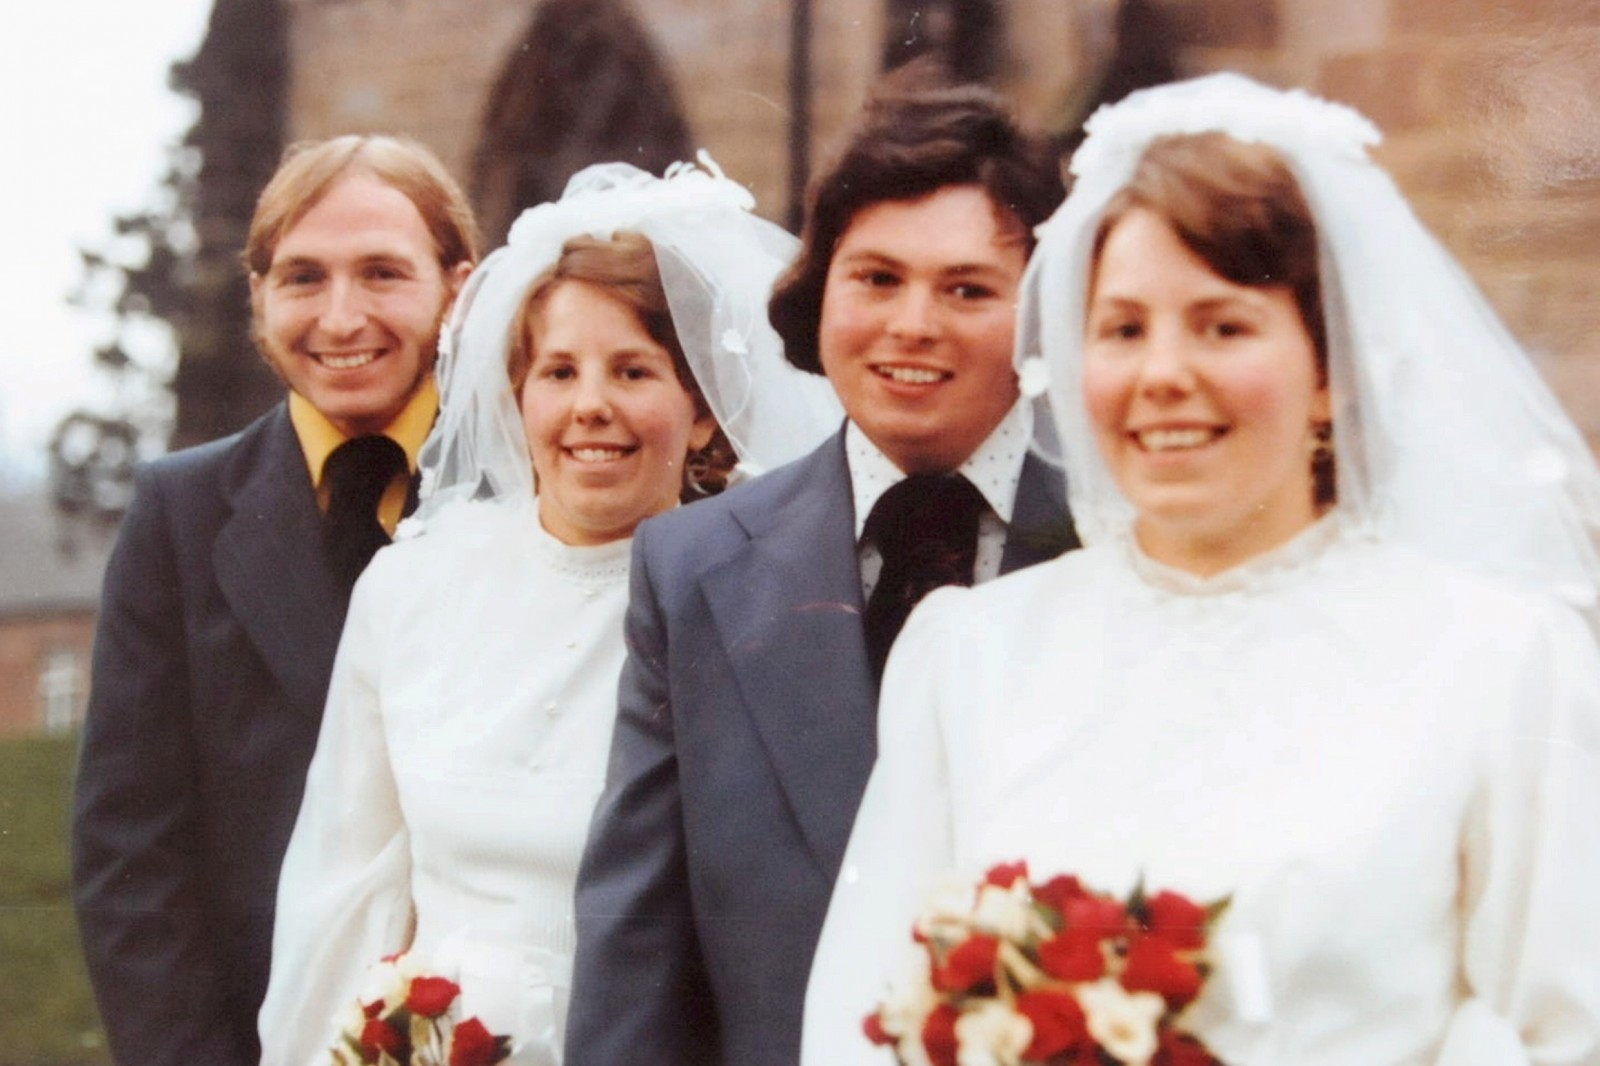 Ronald, Ann, Derrick and Lynda pictured on their joint wedding day.